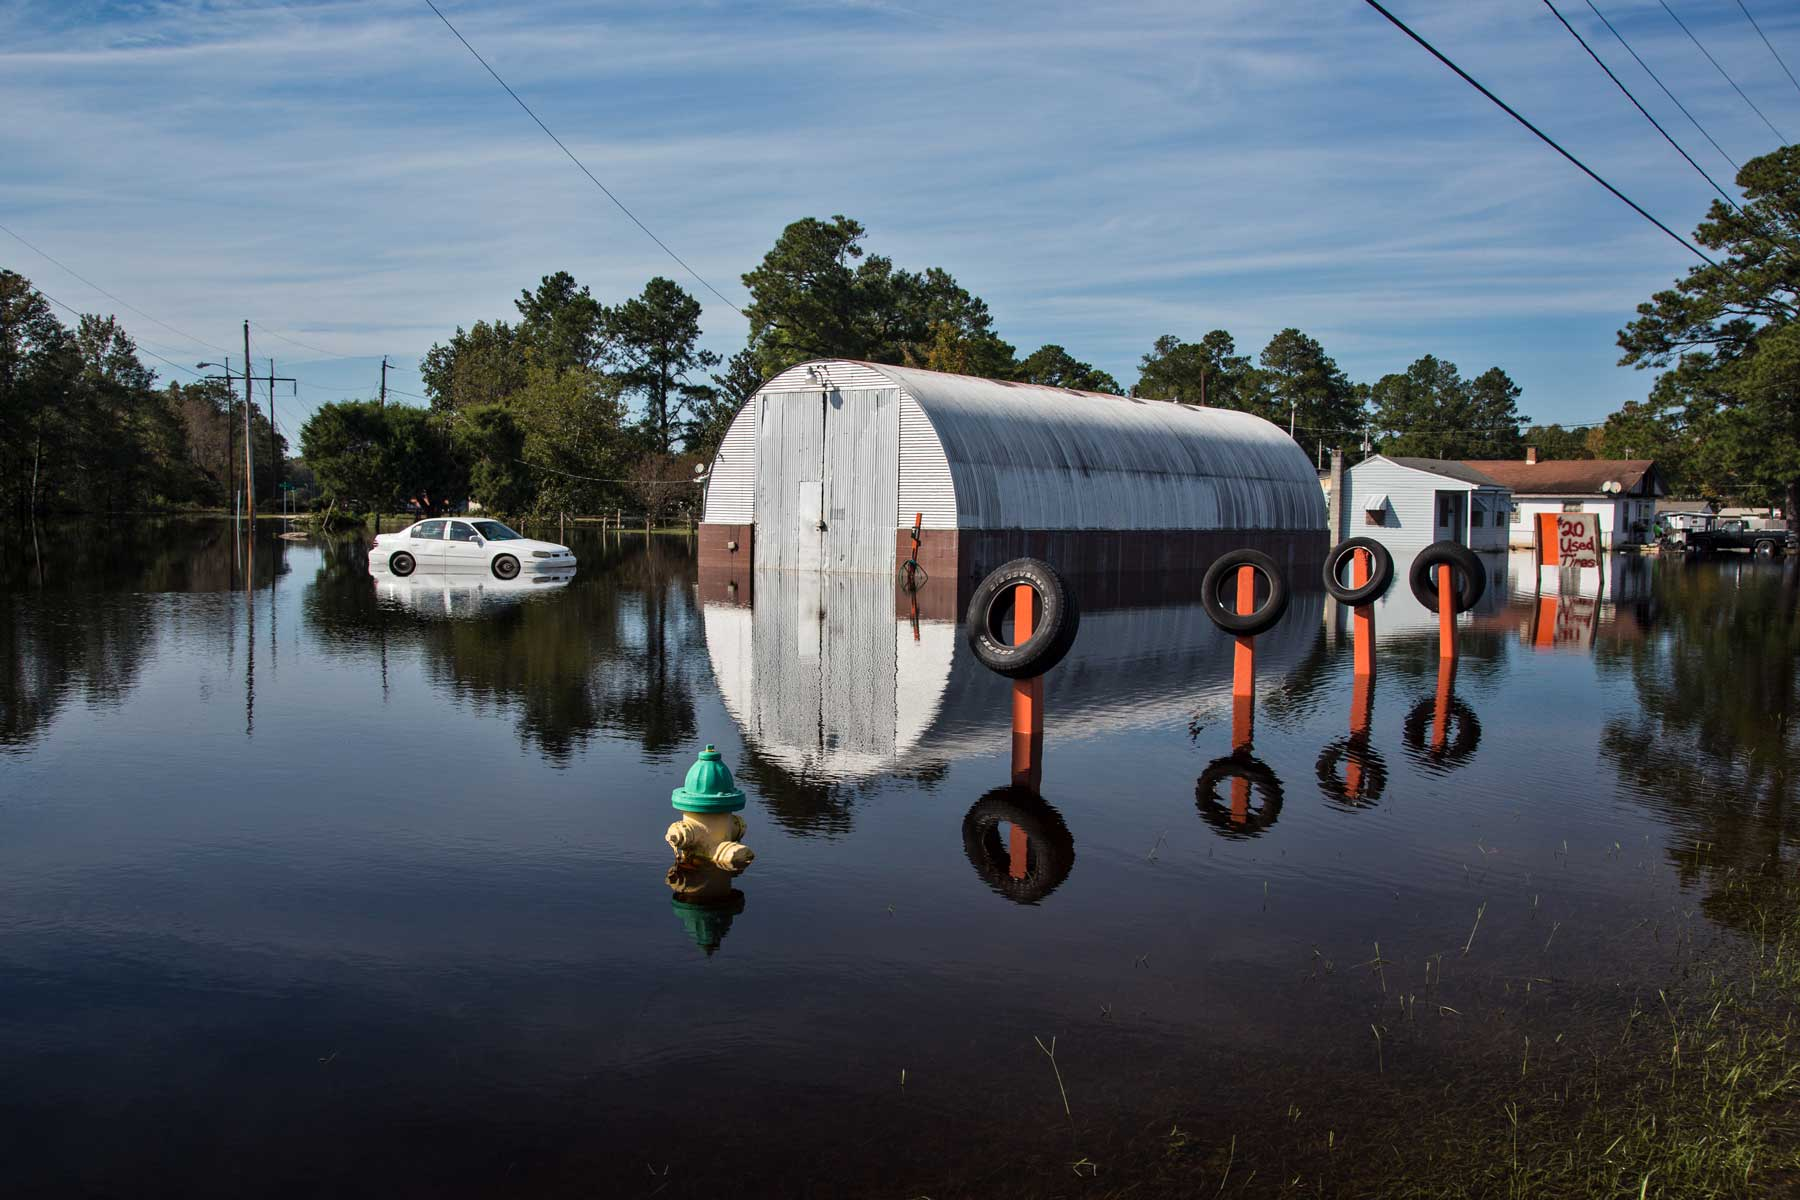 A flooded shed area in Lumberton, N.C. is reflected in the floodwater. (Julie Dermansky)